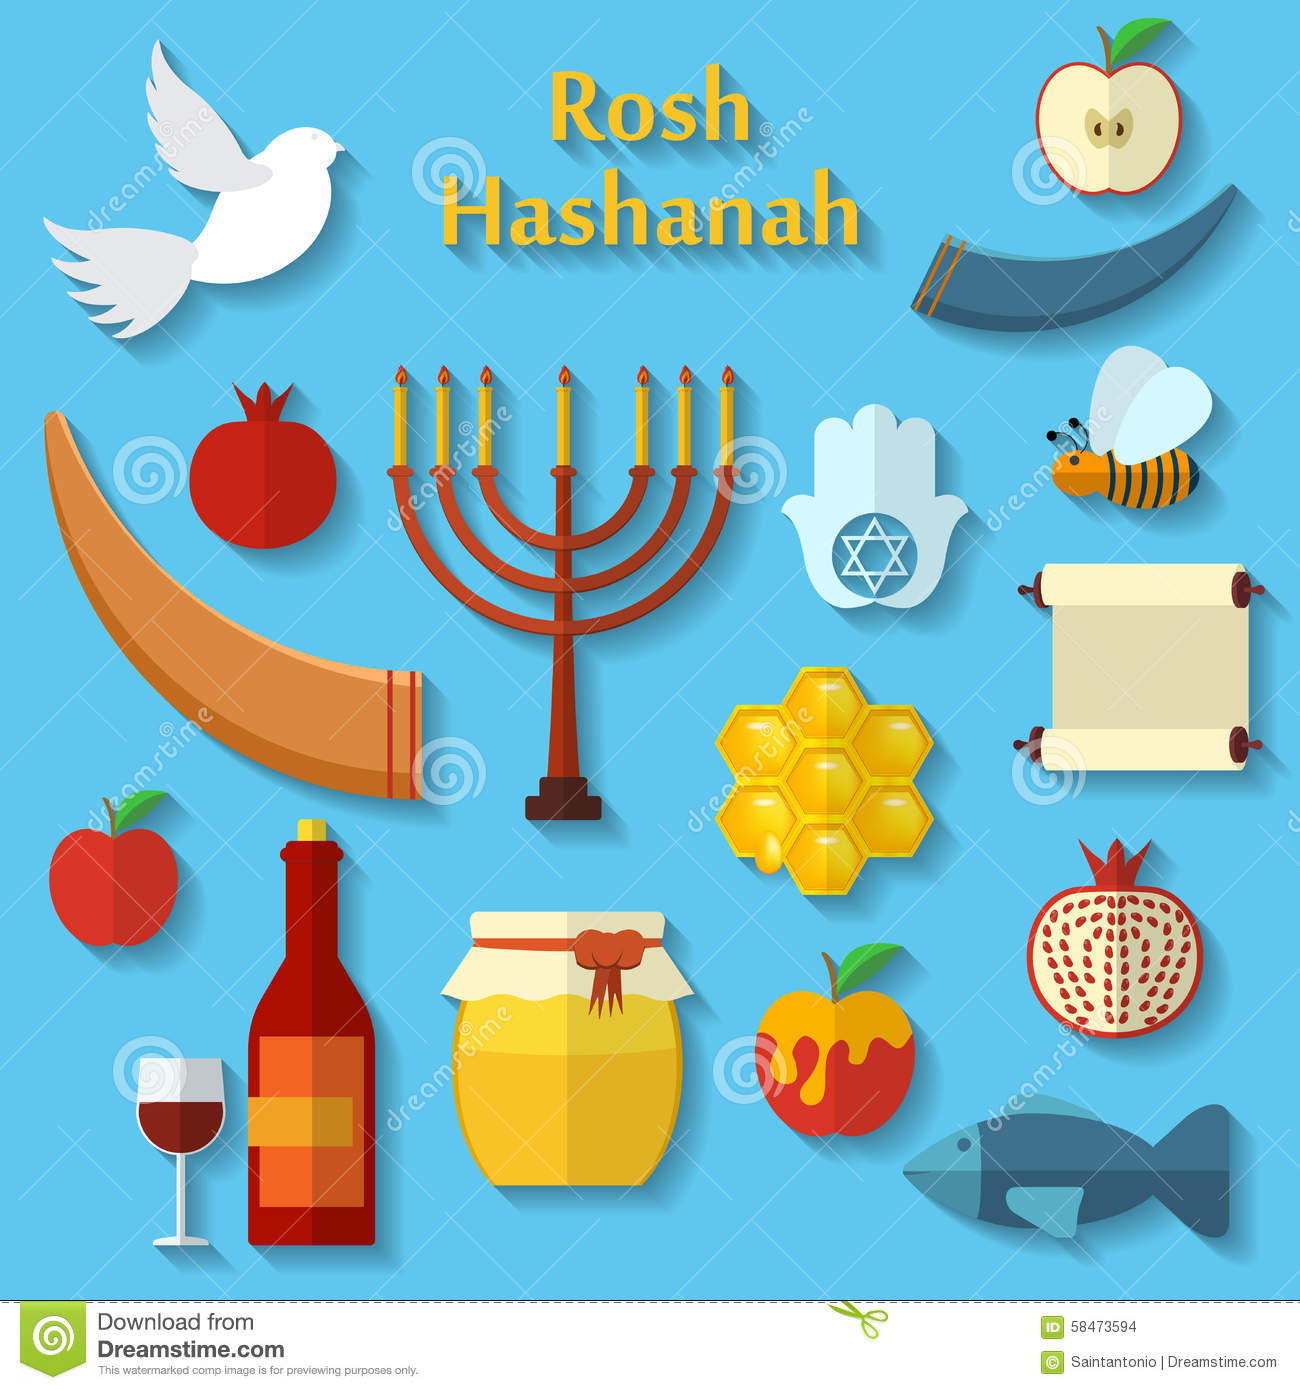 rosh hashanah shana tova or jewish new year flat vector icons set with honey